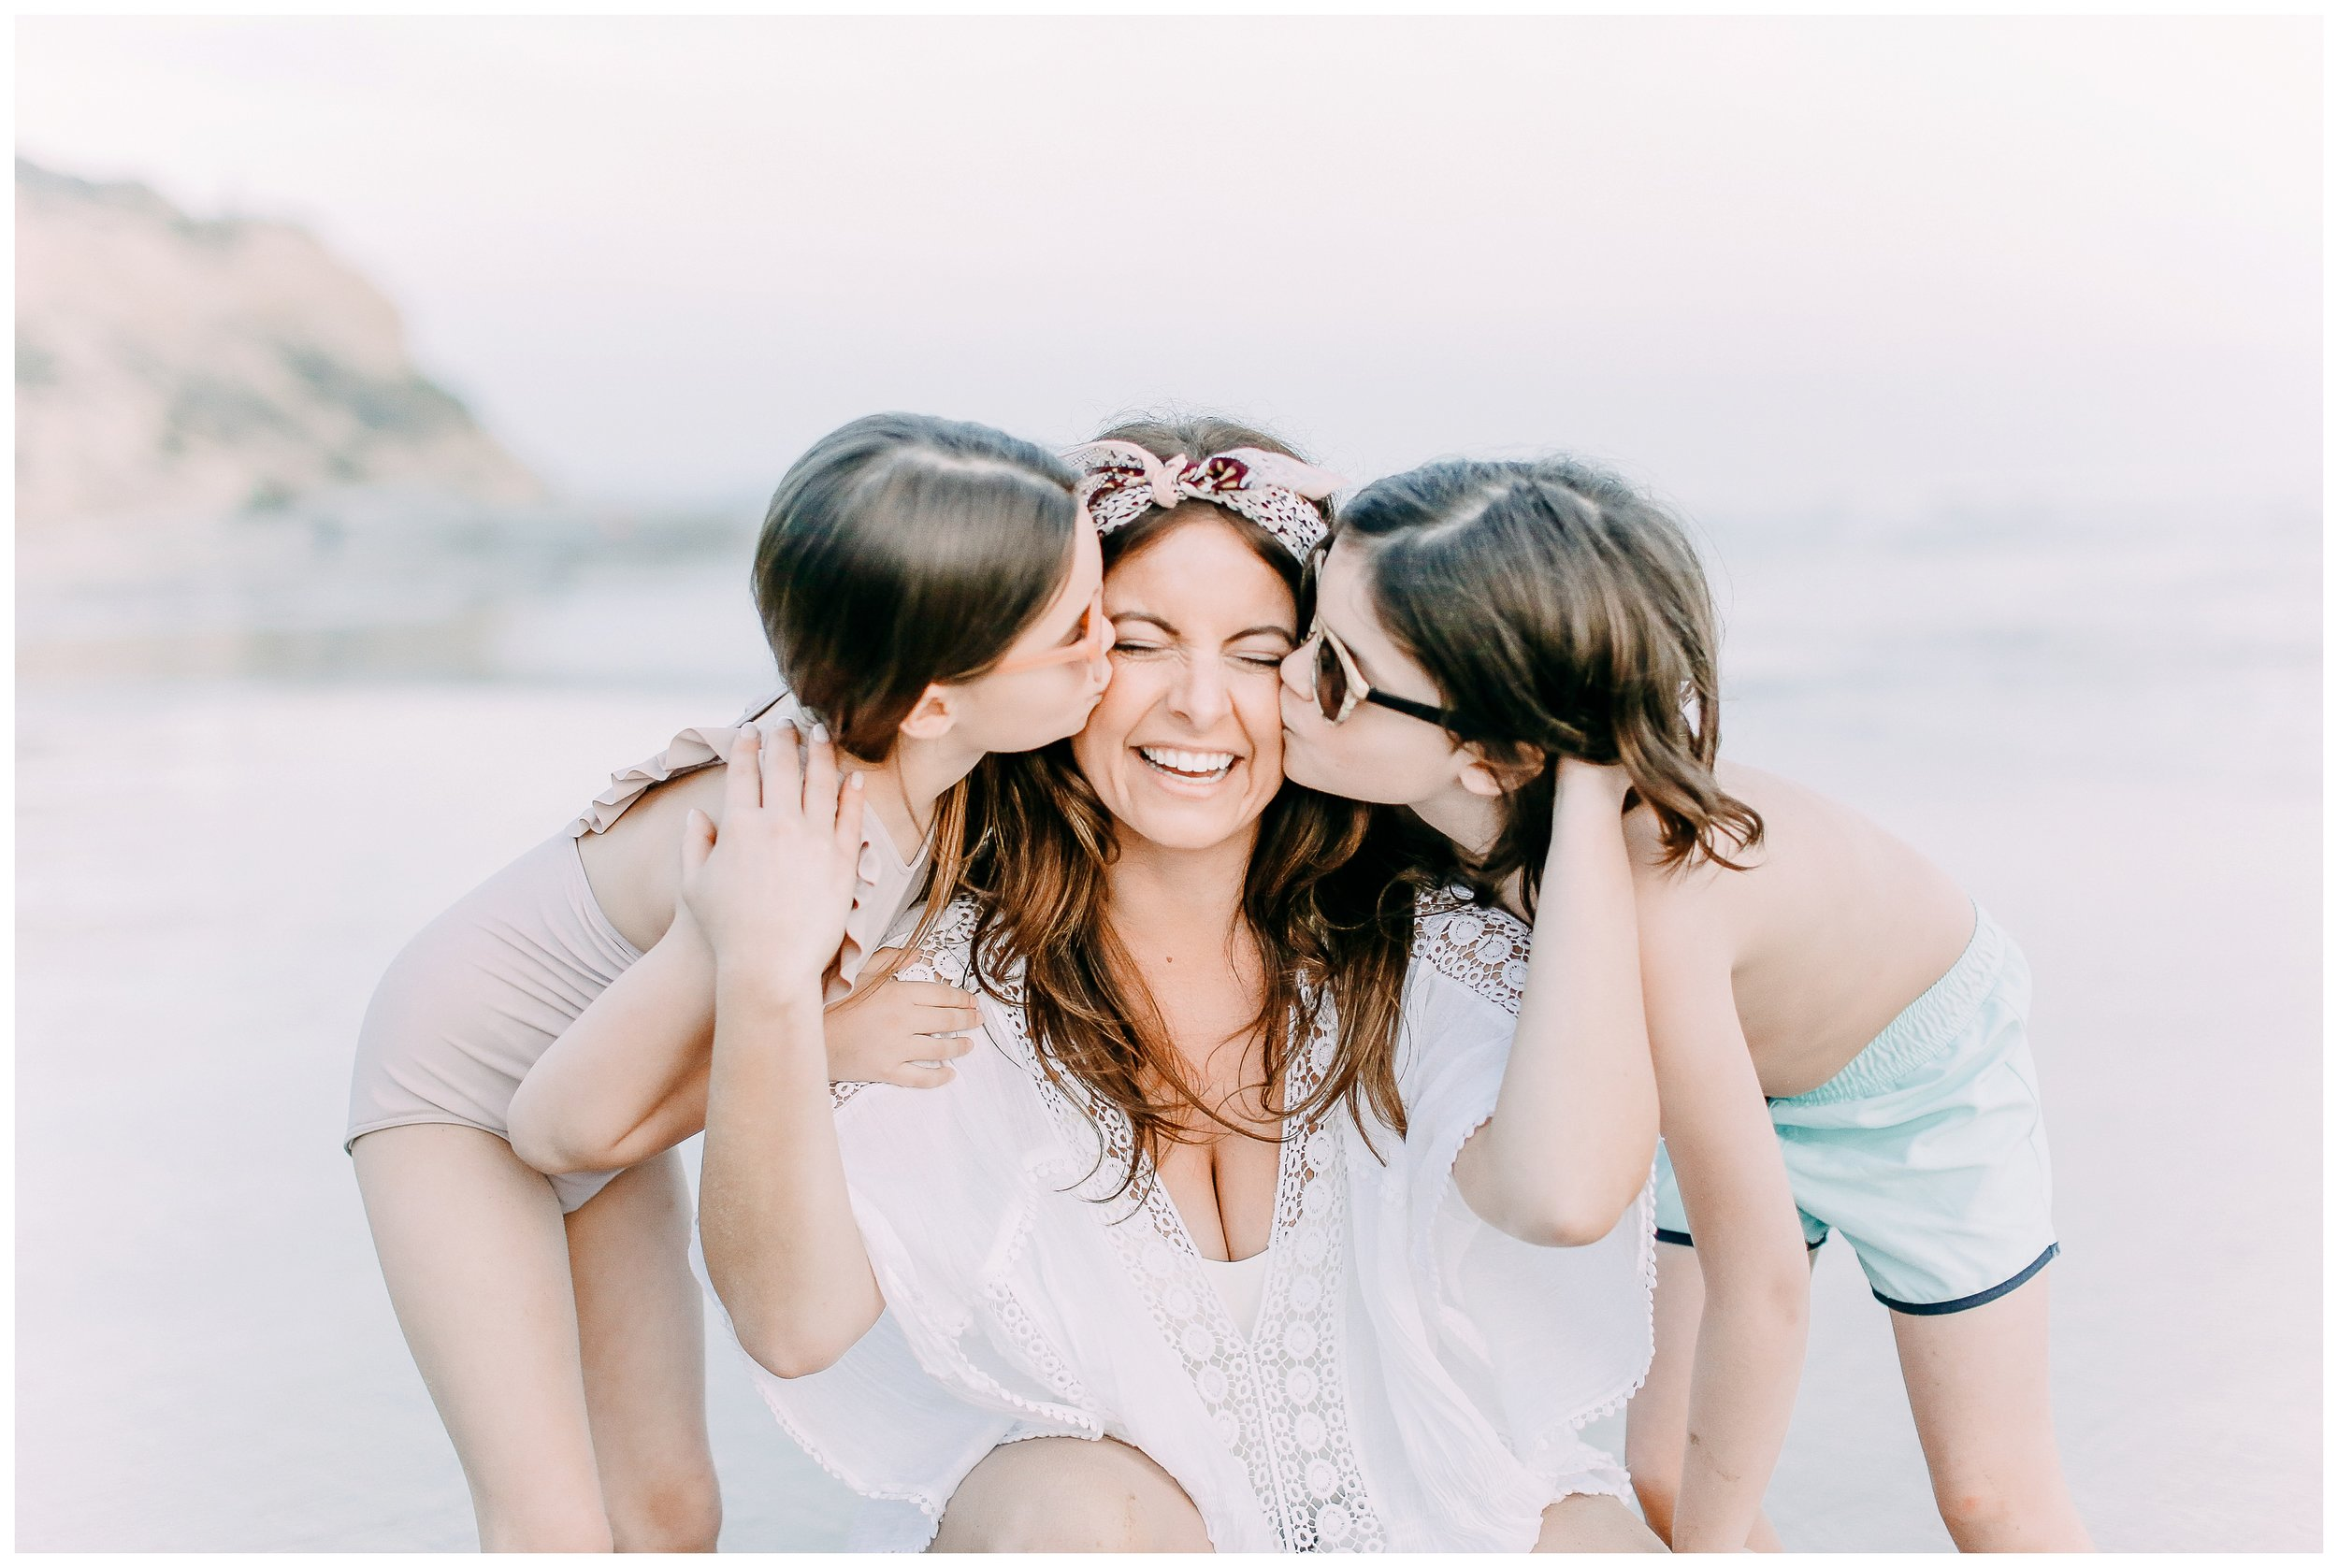 Crystal-Cove-State-Beach-Motherhood- Session-Crystal-Cove-Newport-Beach-Family-Photographer-Crystal-Cove-Minnow-Swim-Cori-Kleckner-Photography-Orange-County-Vacation-Family-Photos-Session-_0852.jpg